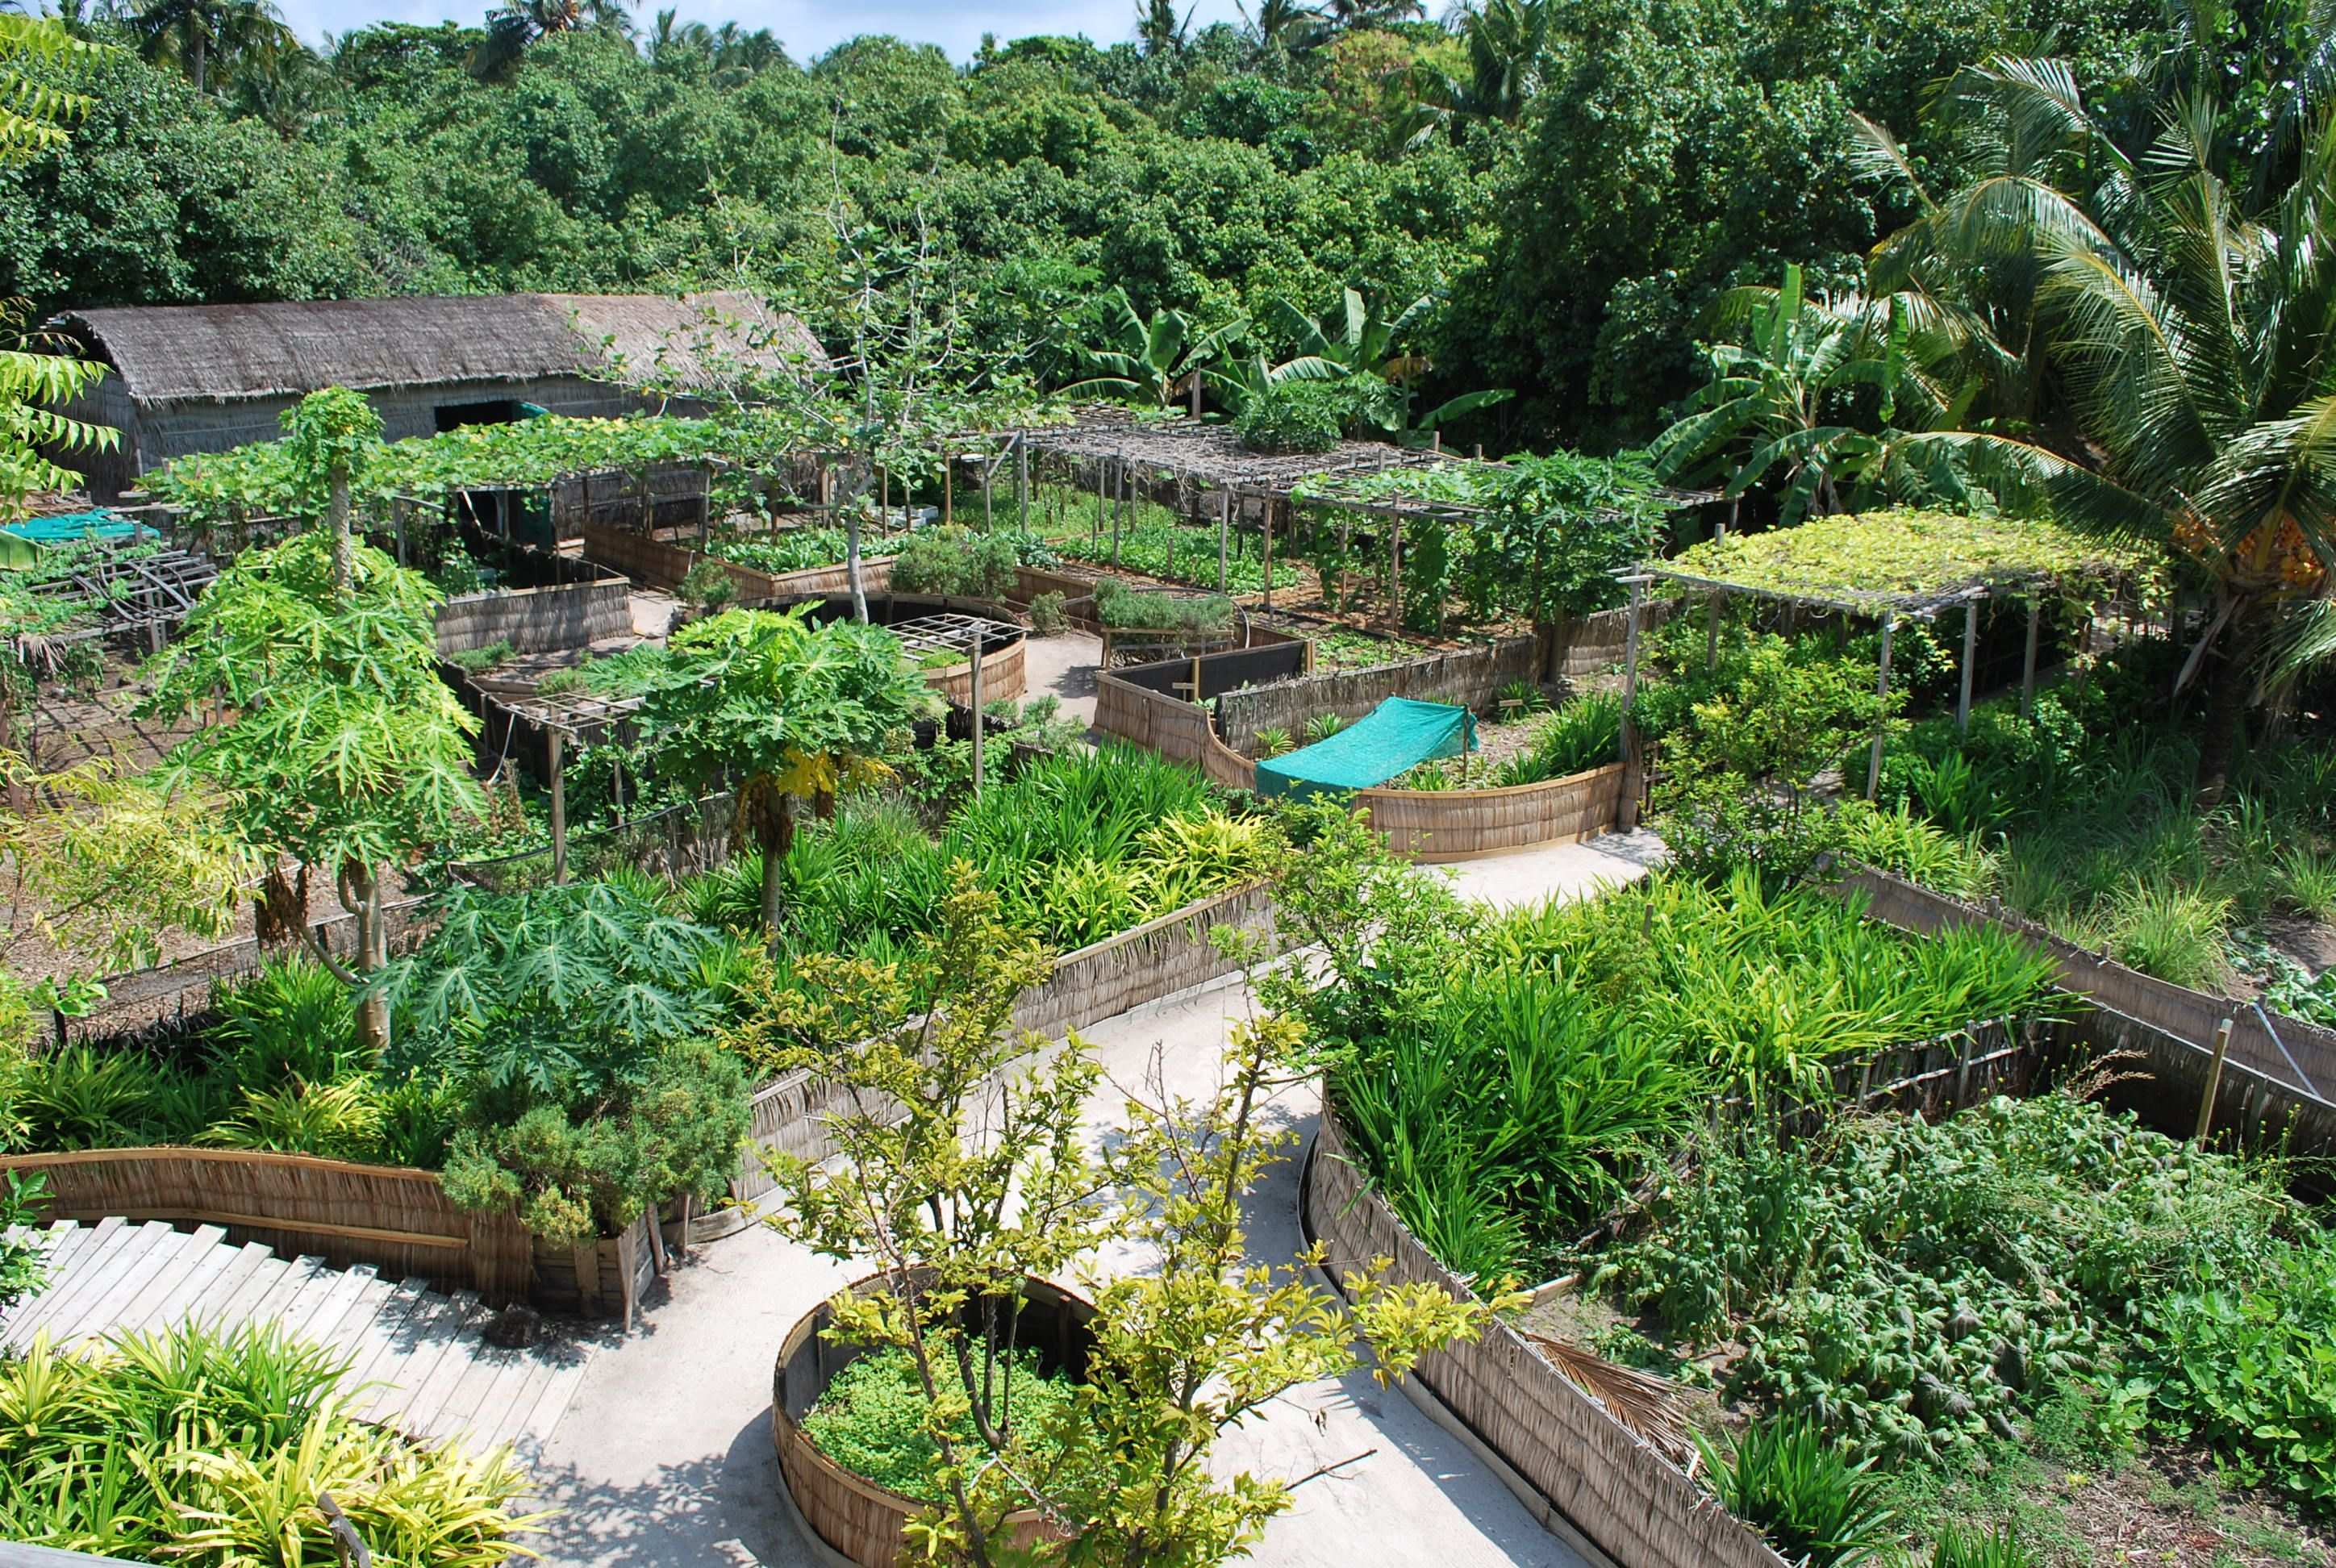 Pin on Gardening and sustainable farming